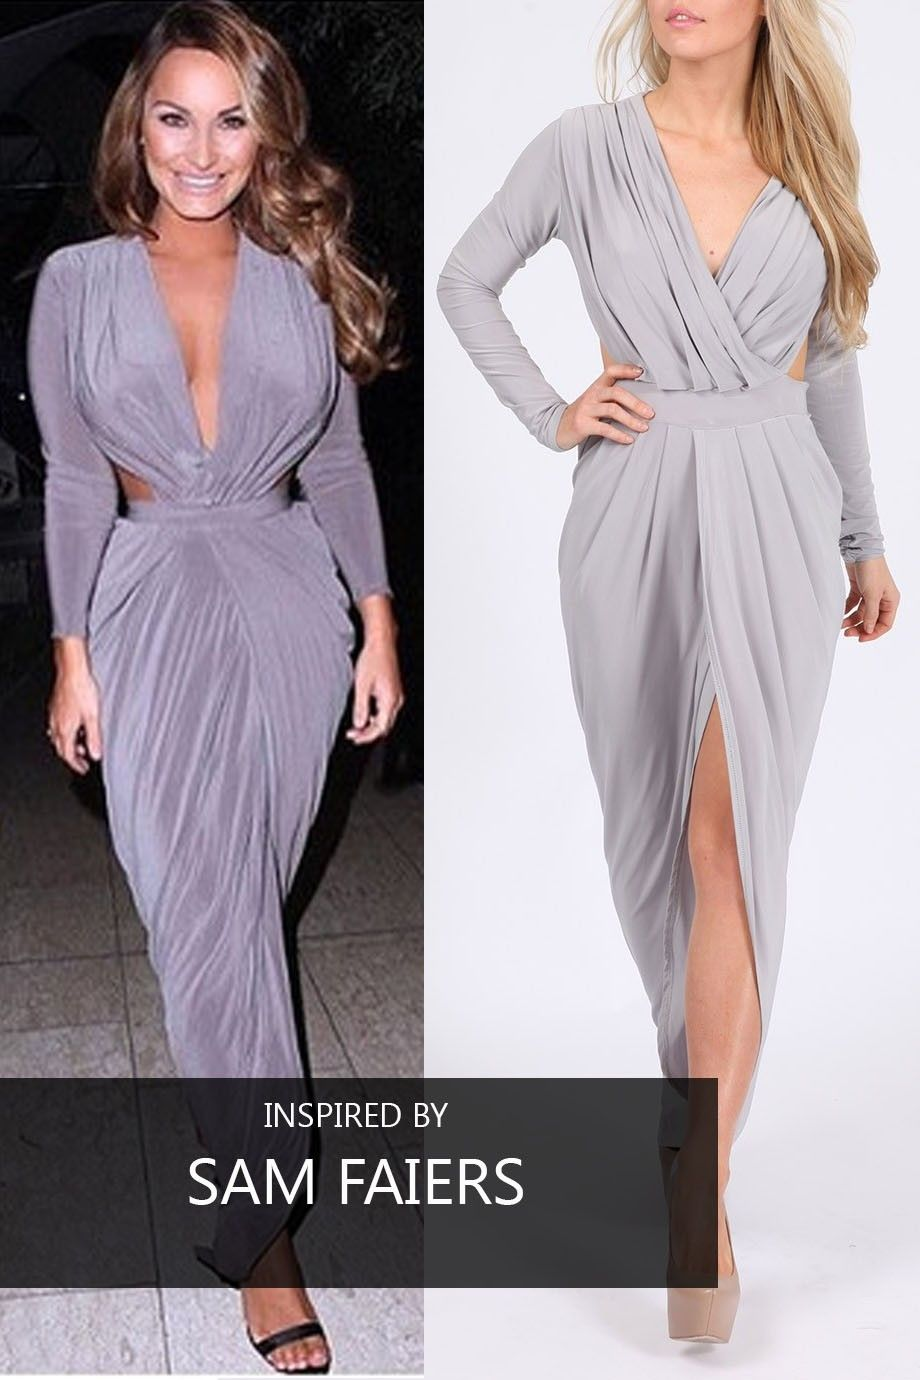 06beb6376b Go glam like Sam Faiers in this Missi London Wholesale Goddess Maxi Dress!  Style number: MC1893